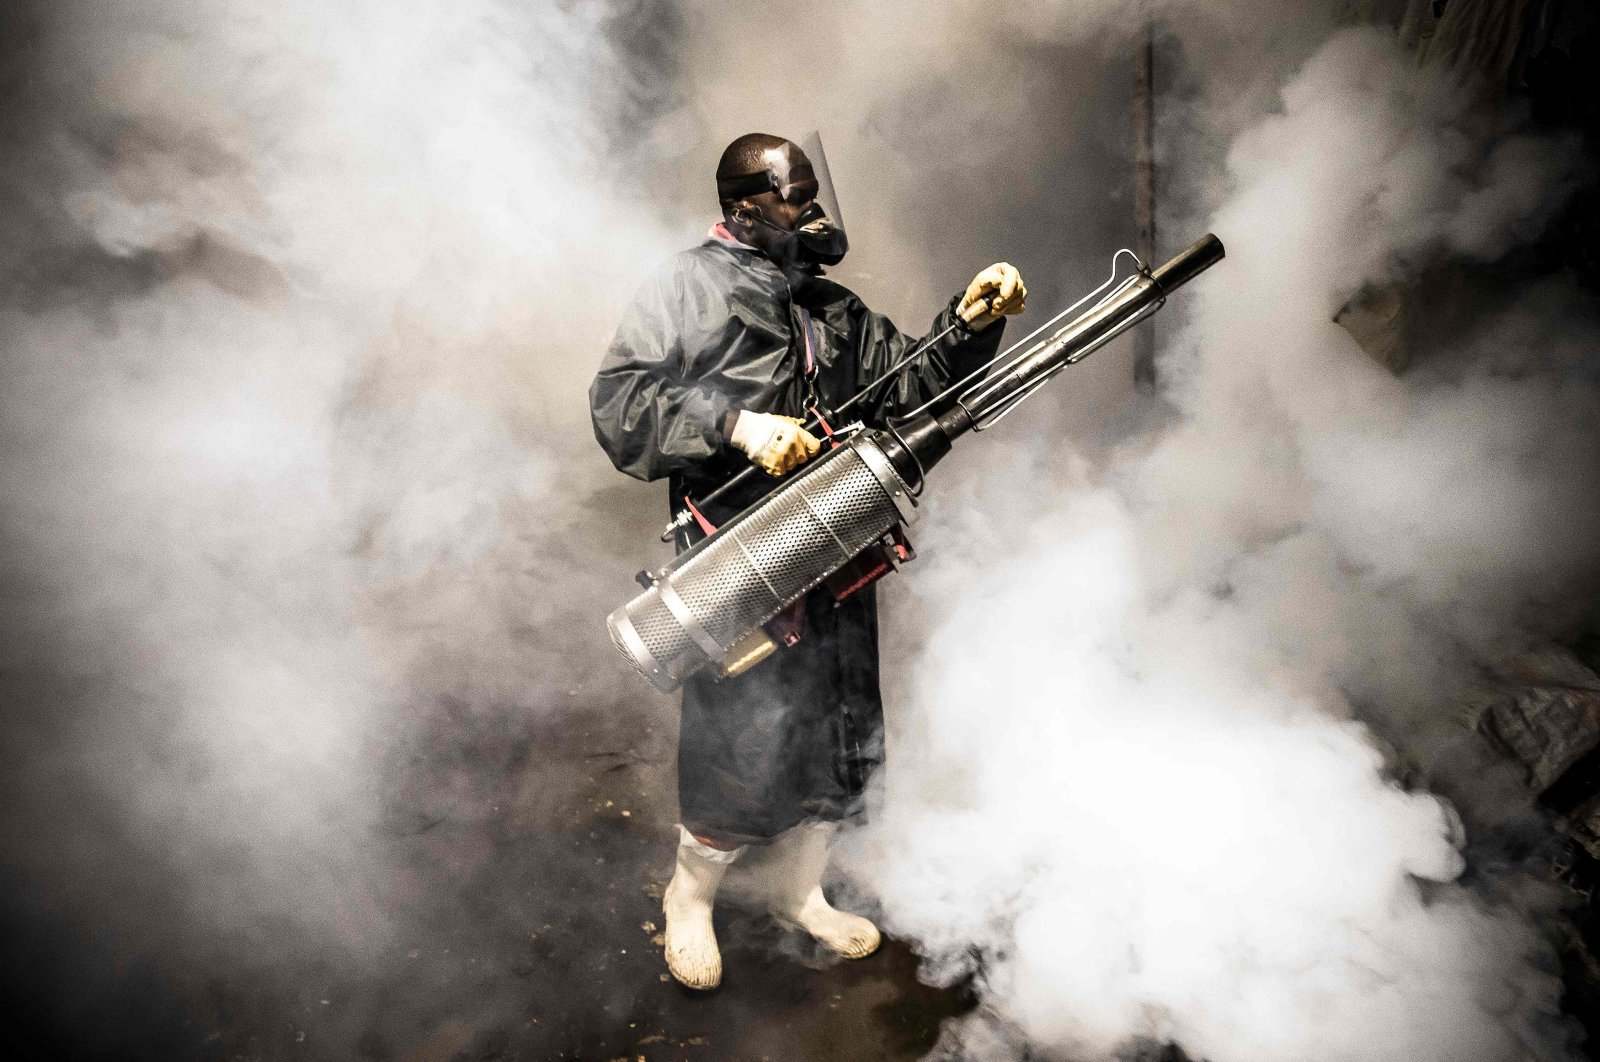 A member of a privately funded nongovernmental organization fumigates and disinfects streets and the stalls at Parklands City Park Market to help curb the spread of COVID-19, Nairobi, Kenya, April 15, 2020. (AFP Photo)